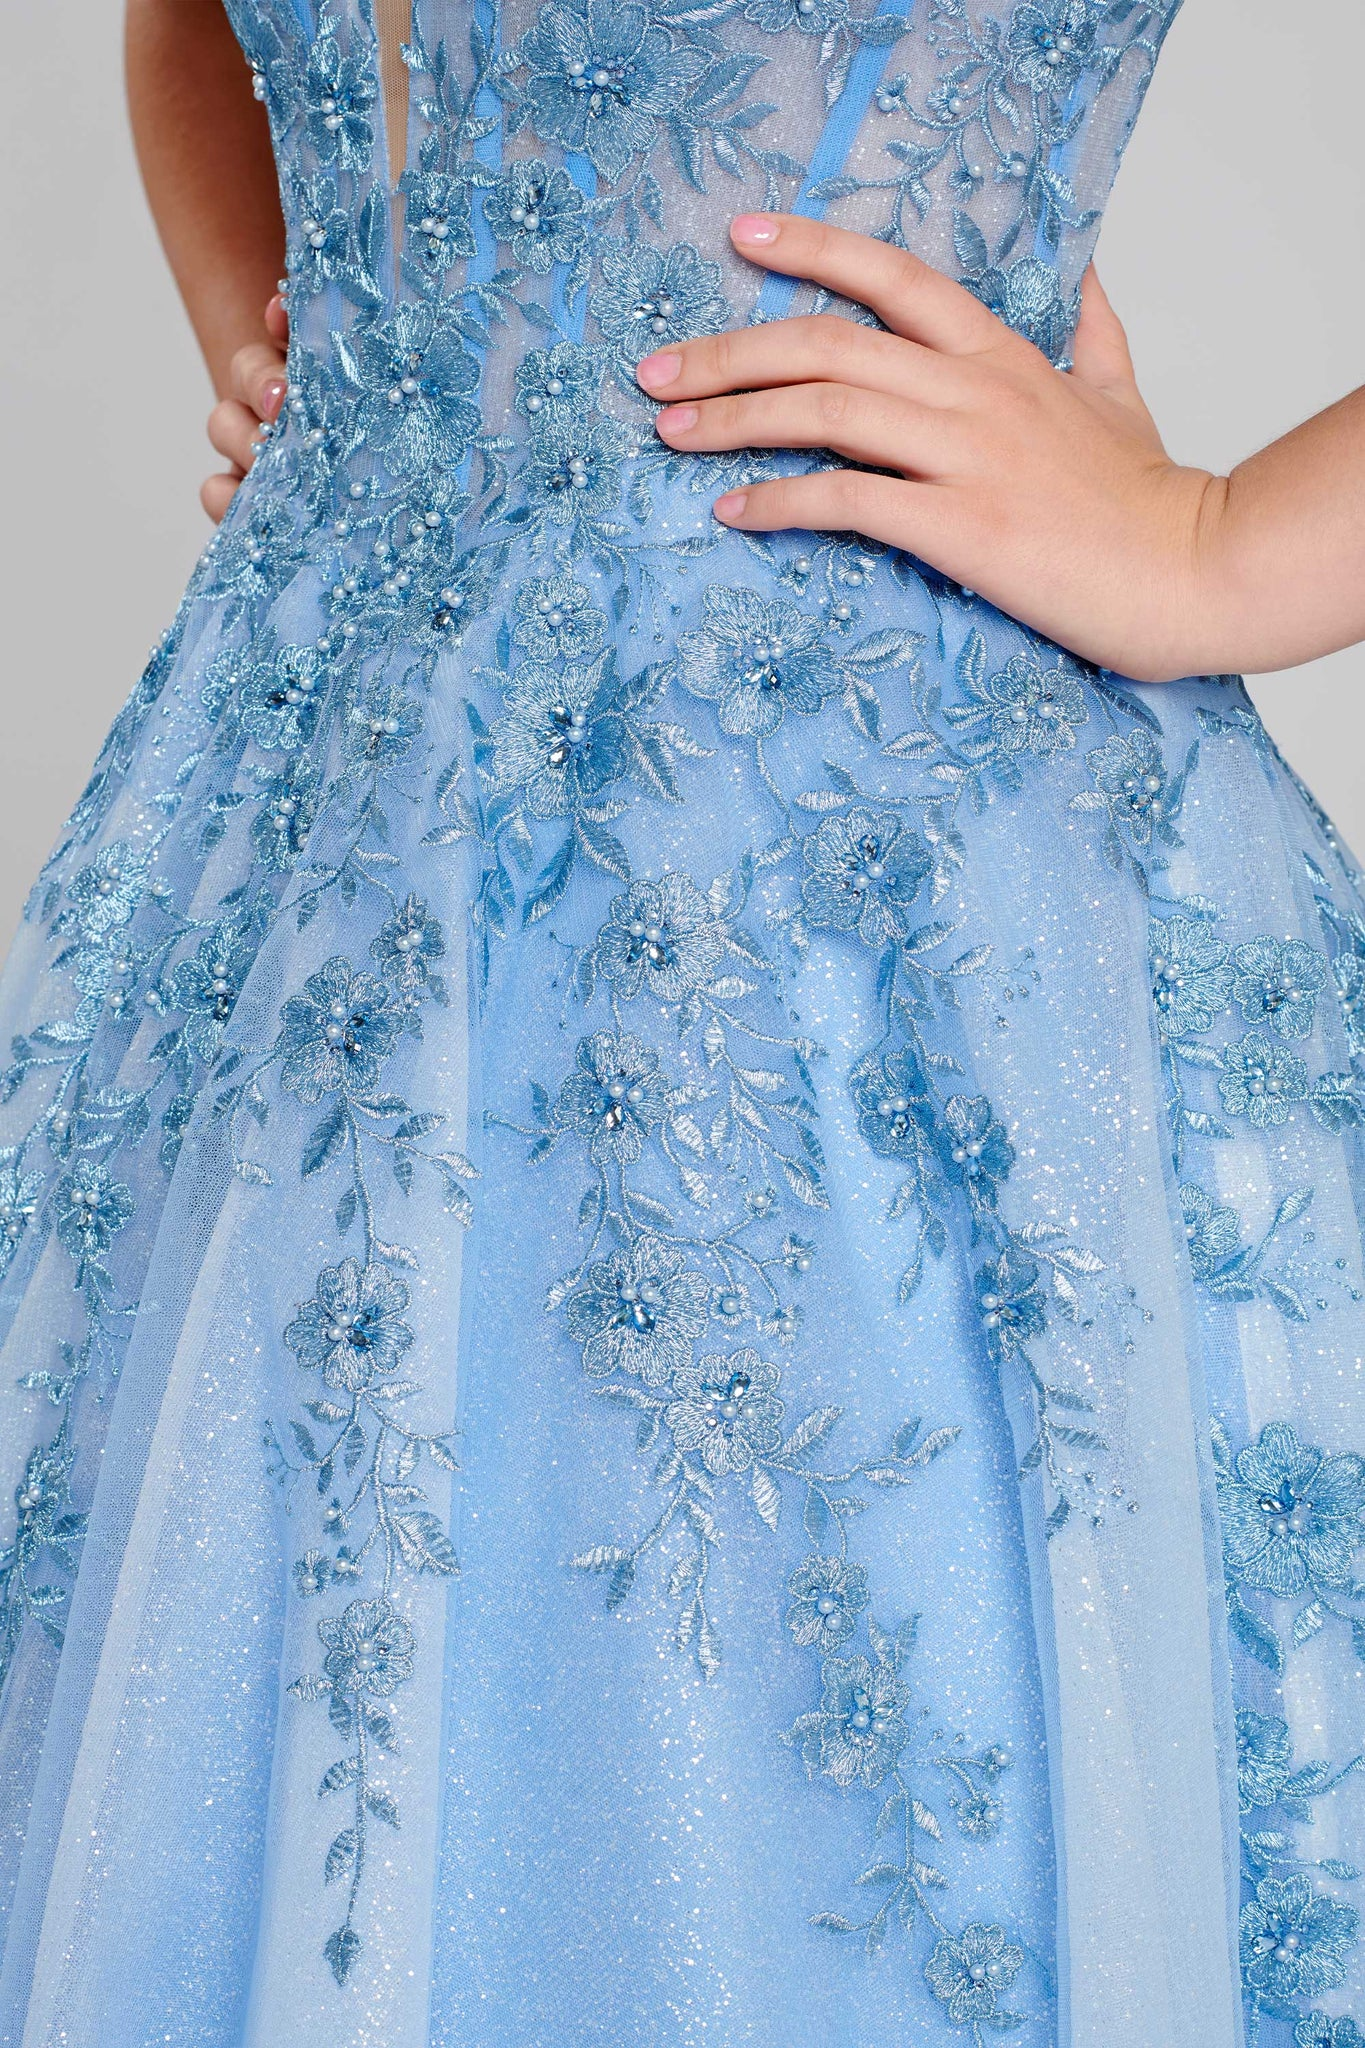 Ellie Wilde Perrywinkle Lace Ball Gown - Gissings Boutique